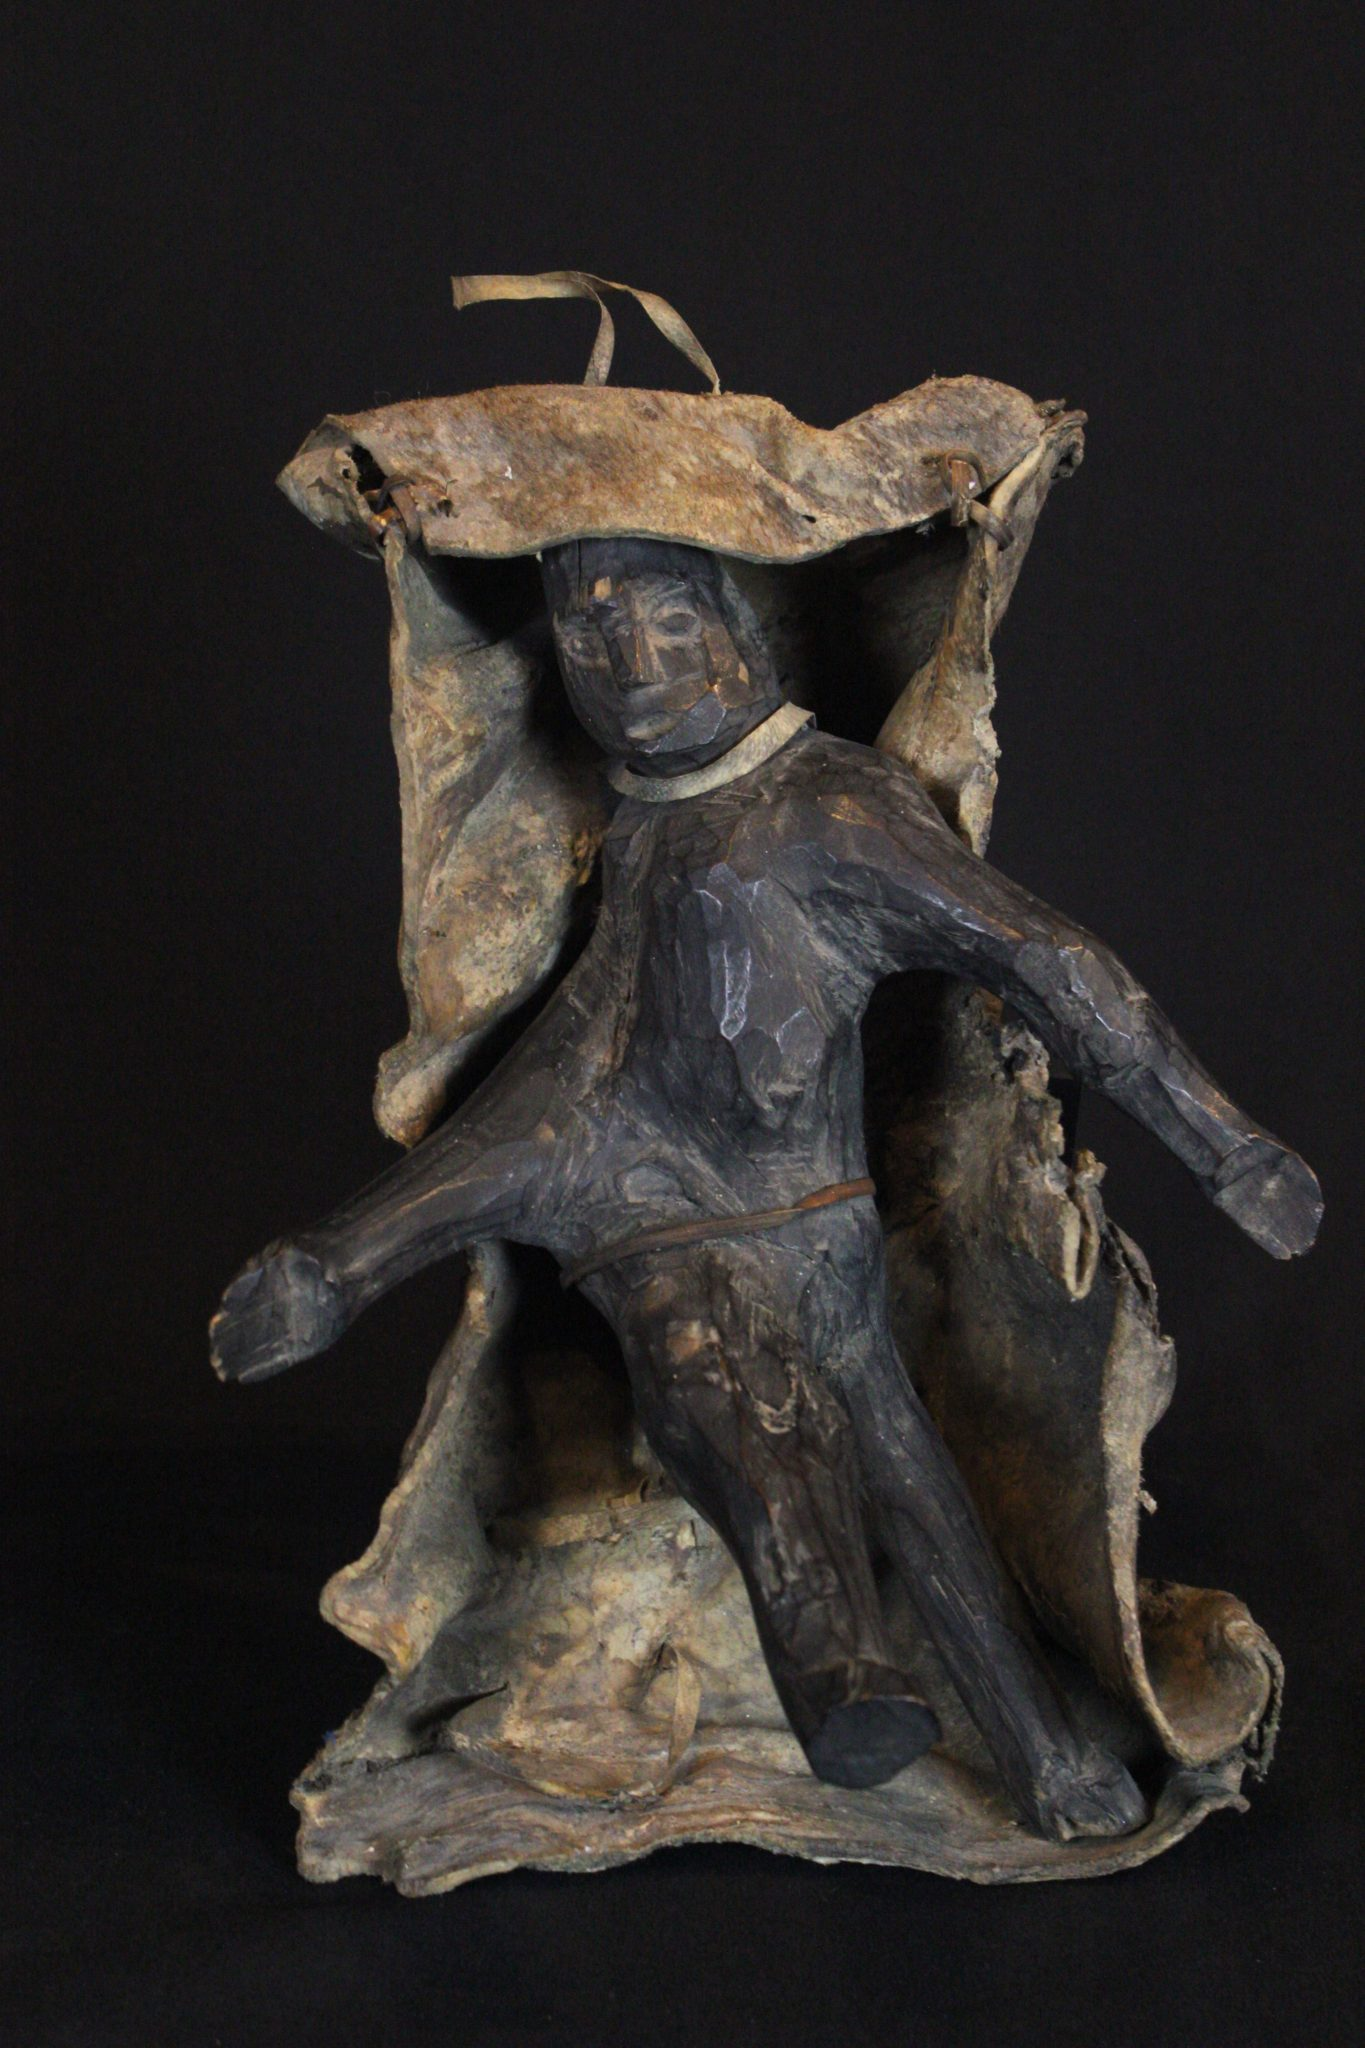 "Shaman Fetish Figure, Kalimantan, Borneo, Indonesia, Dayak tribe Early 20th c, Wood pigmented with soot, animal hide. Hung on the wall in the shaman's house and used for calling spirits and for healing rituals. 12"" x 8"" x 6"", $600."